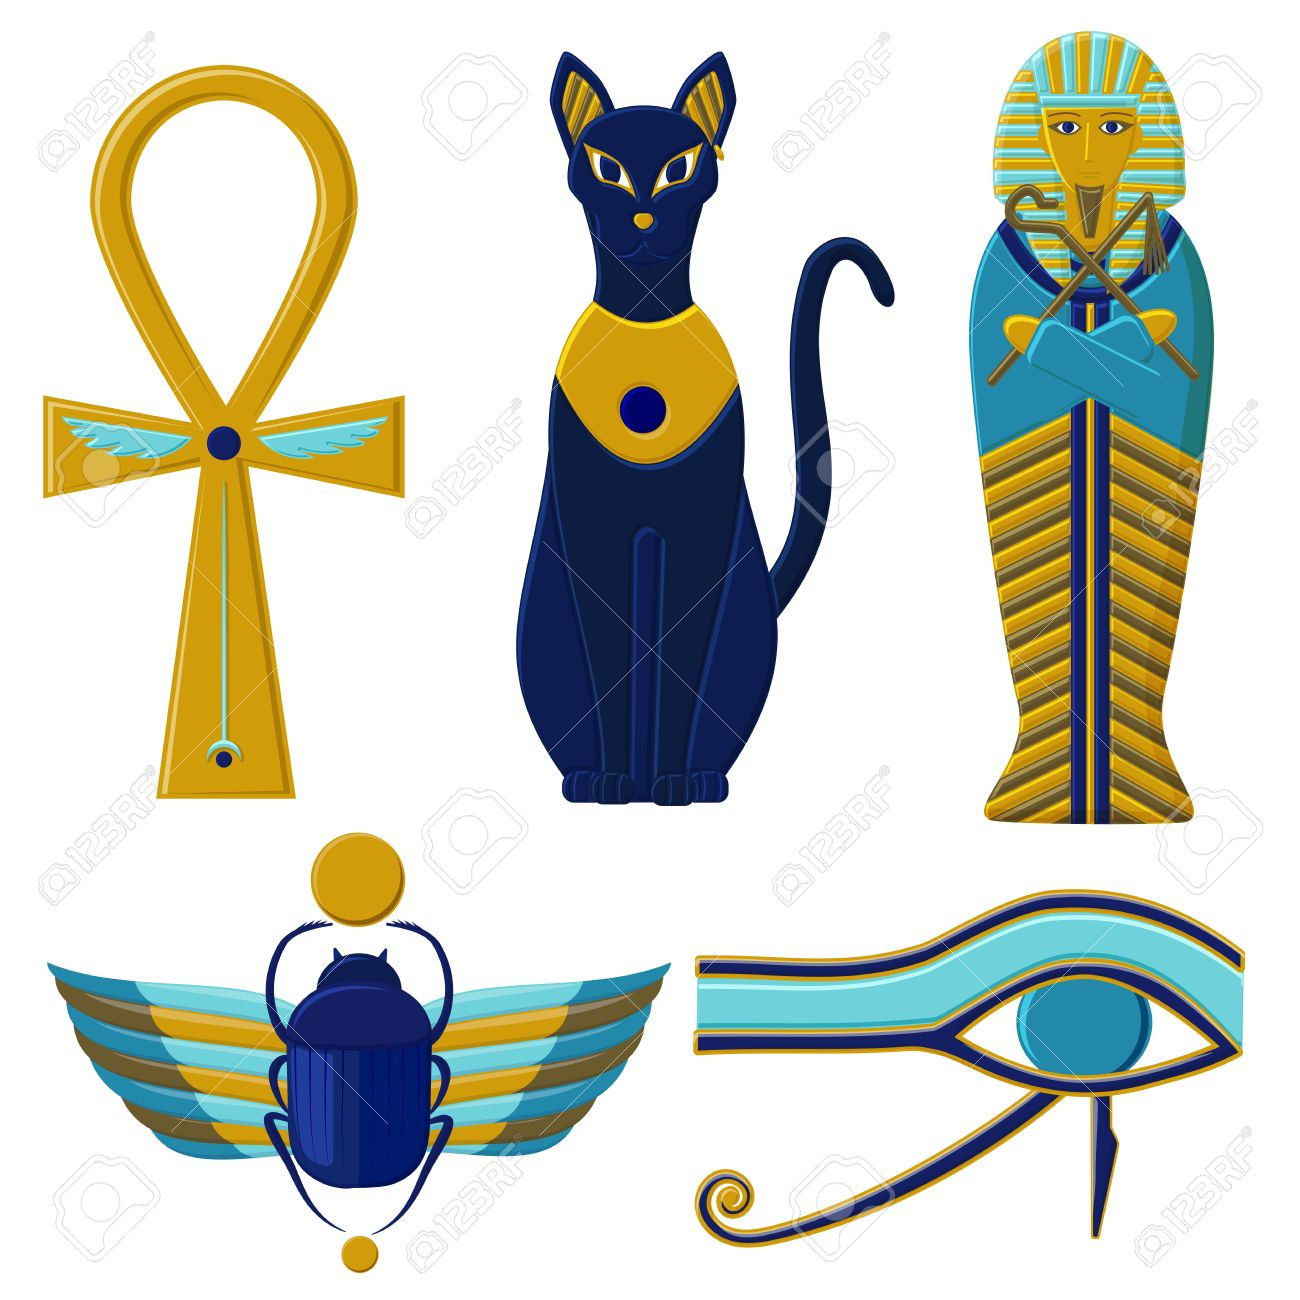 Set of egyptian signs and symbols cultures of ancient egypt set of egyptian signs and symbols cultures of ancient egypt stock vector 75743177 biocorpaavc